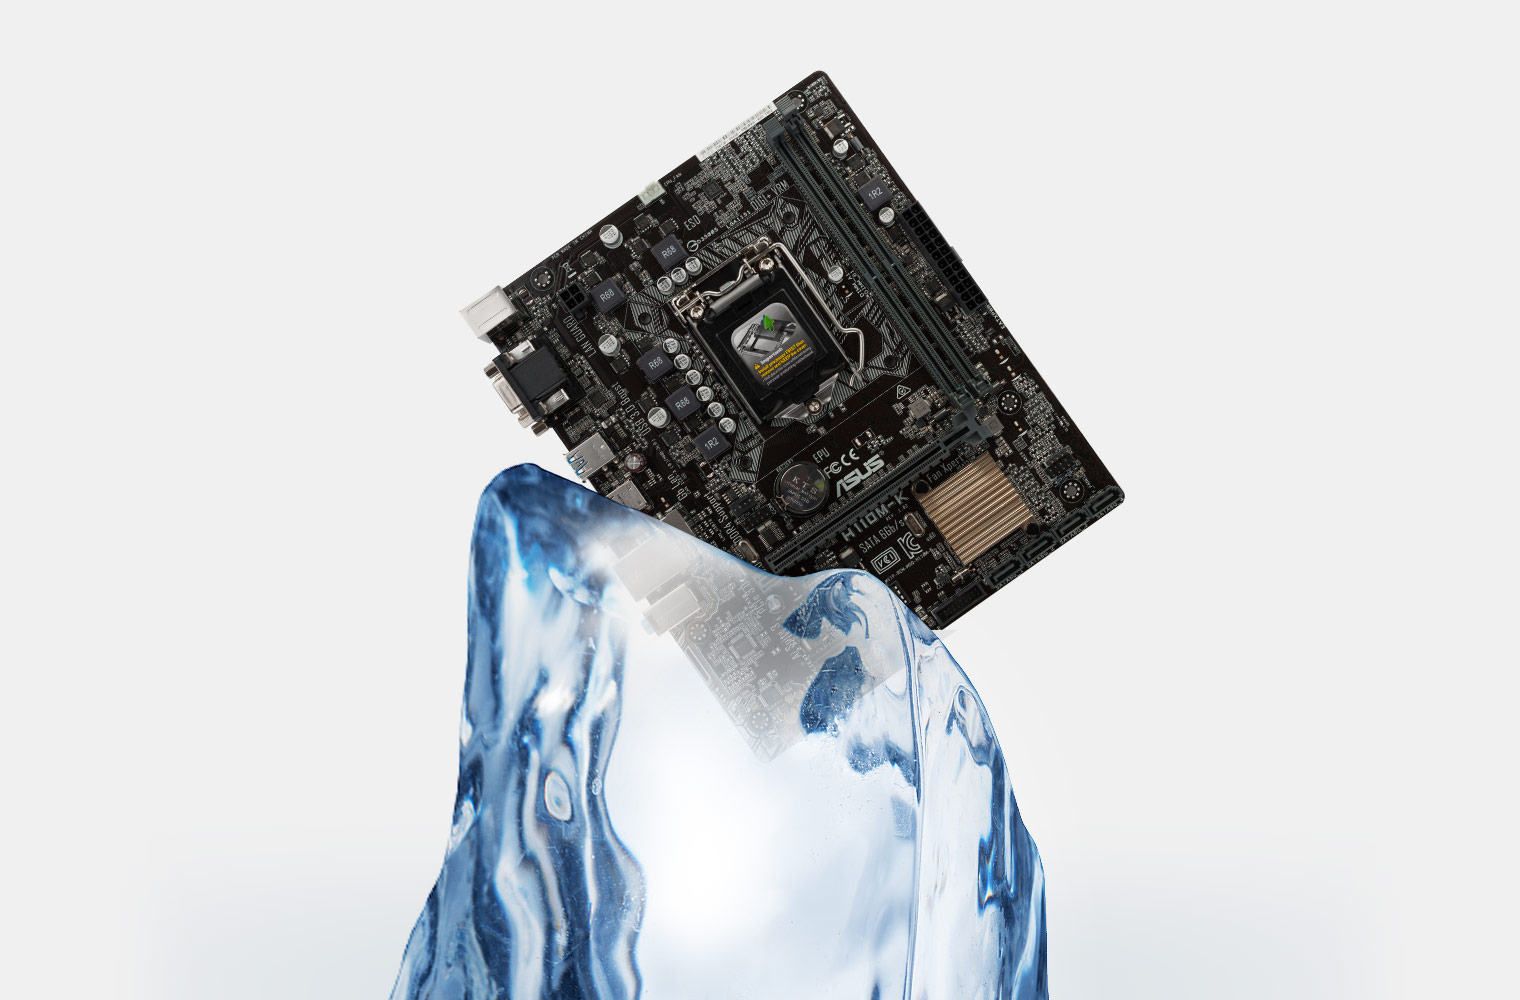 ASUS Motherboard on Ice